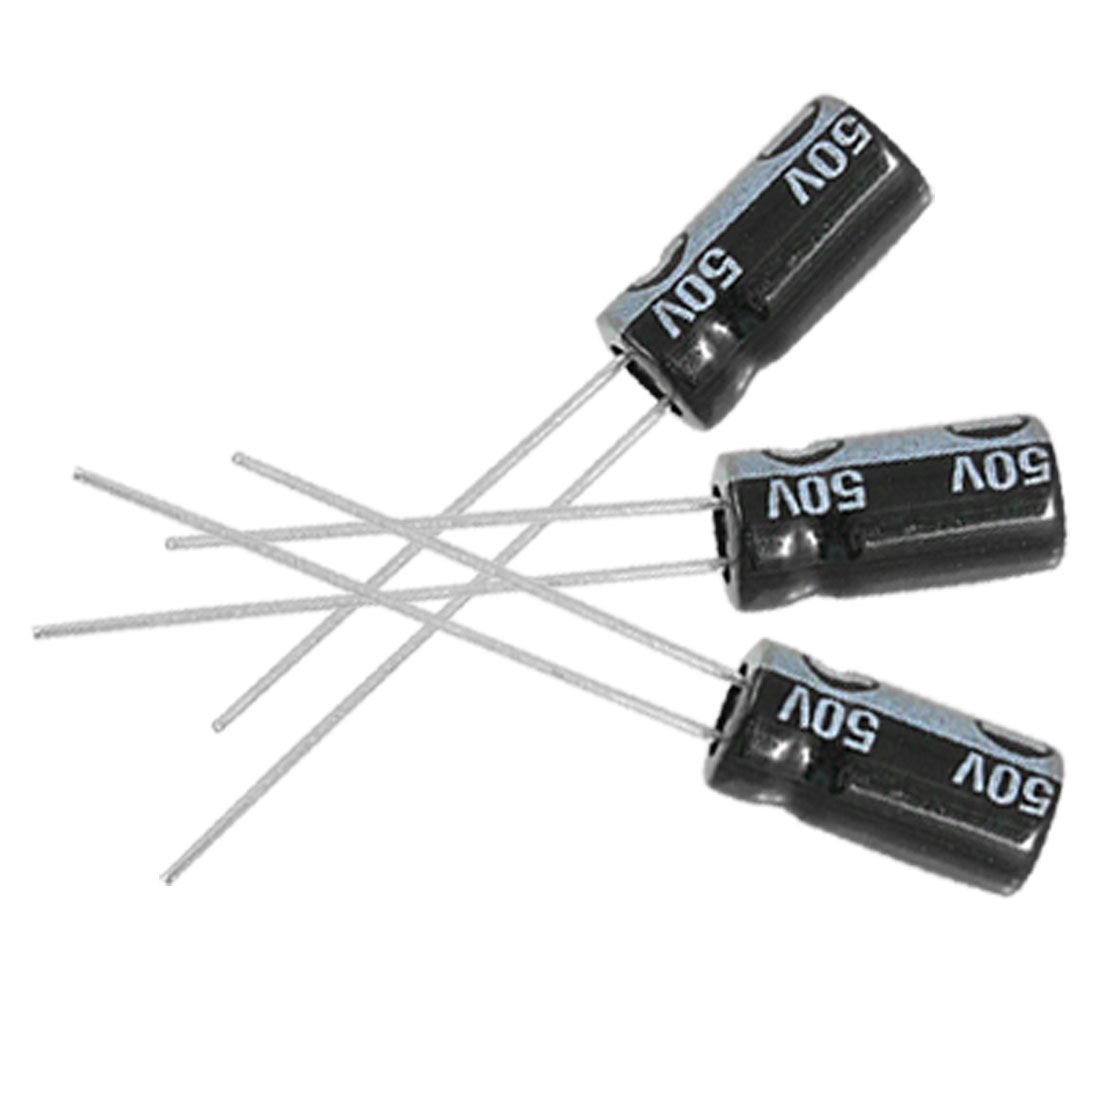 20 x 33uF 50V 105C Radial Electrolytic Capacitor 6x12mm